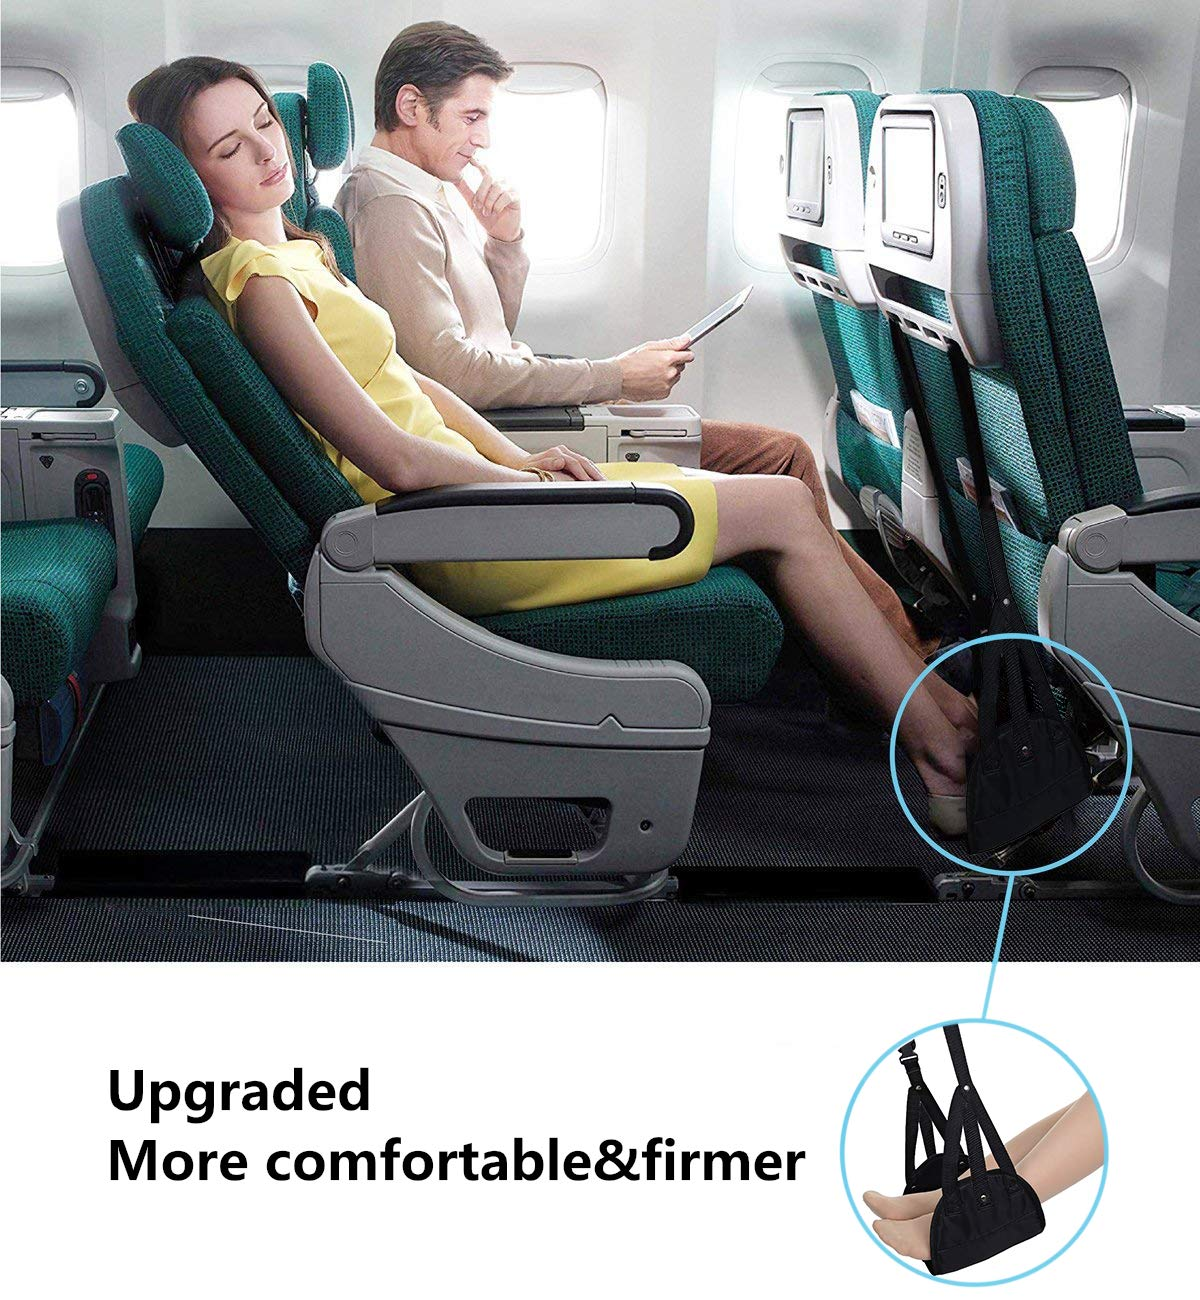 Airplane footrest, Portable Airplane Travel Foot Rest Hammock for Flight Bus Train Office Home Airplane Travel Accessories Legs Hammock with Adjustable Height,Black,Vefanny by Verfanny (Image #6)